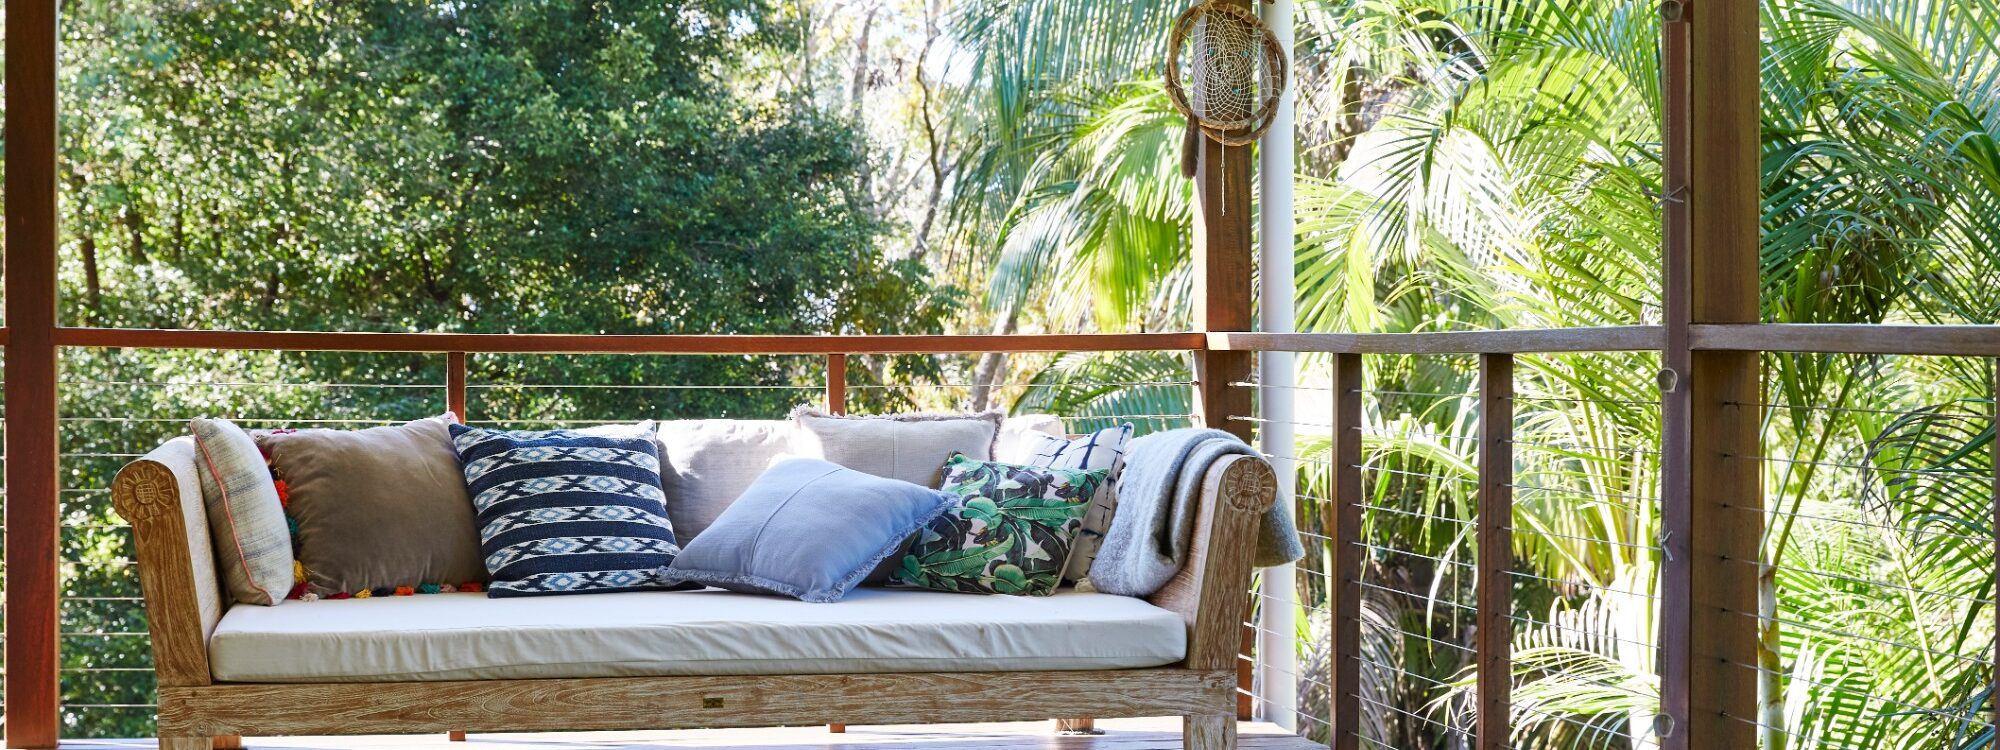 Mahalo House - Daybed